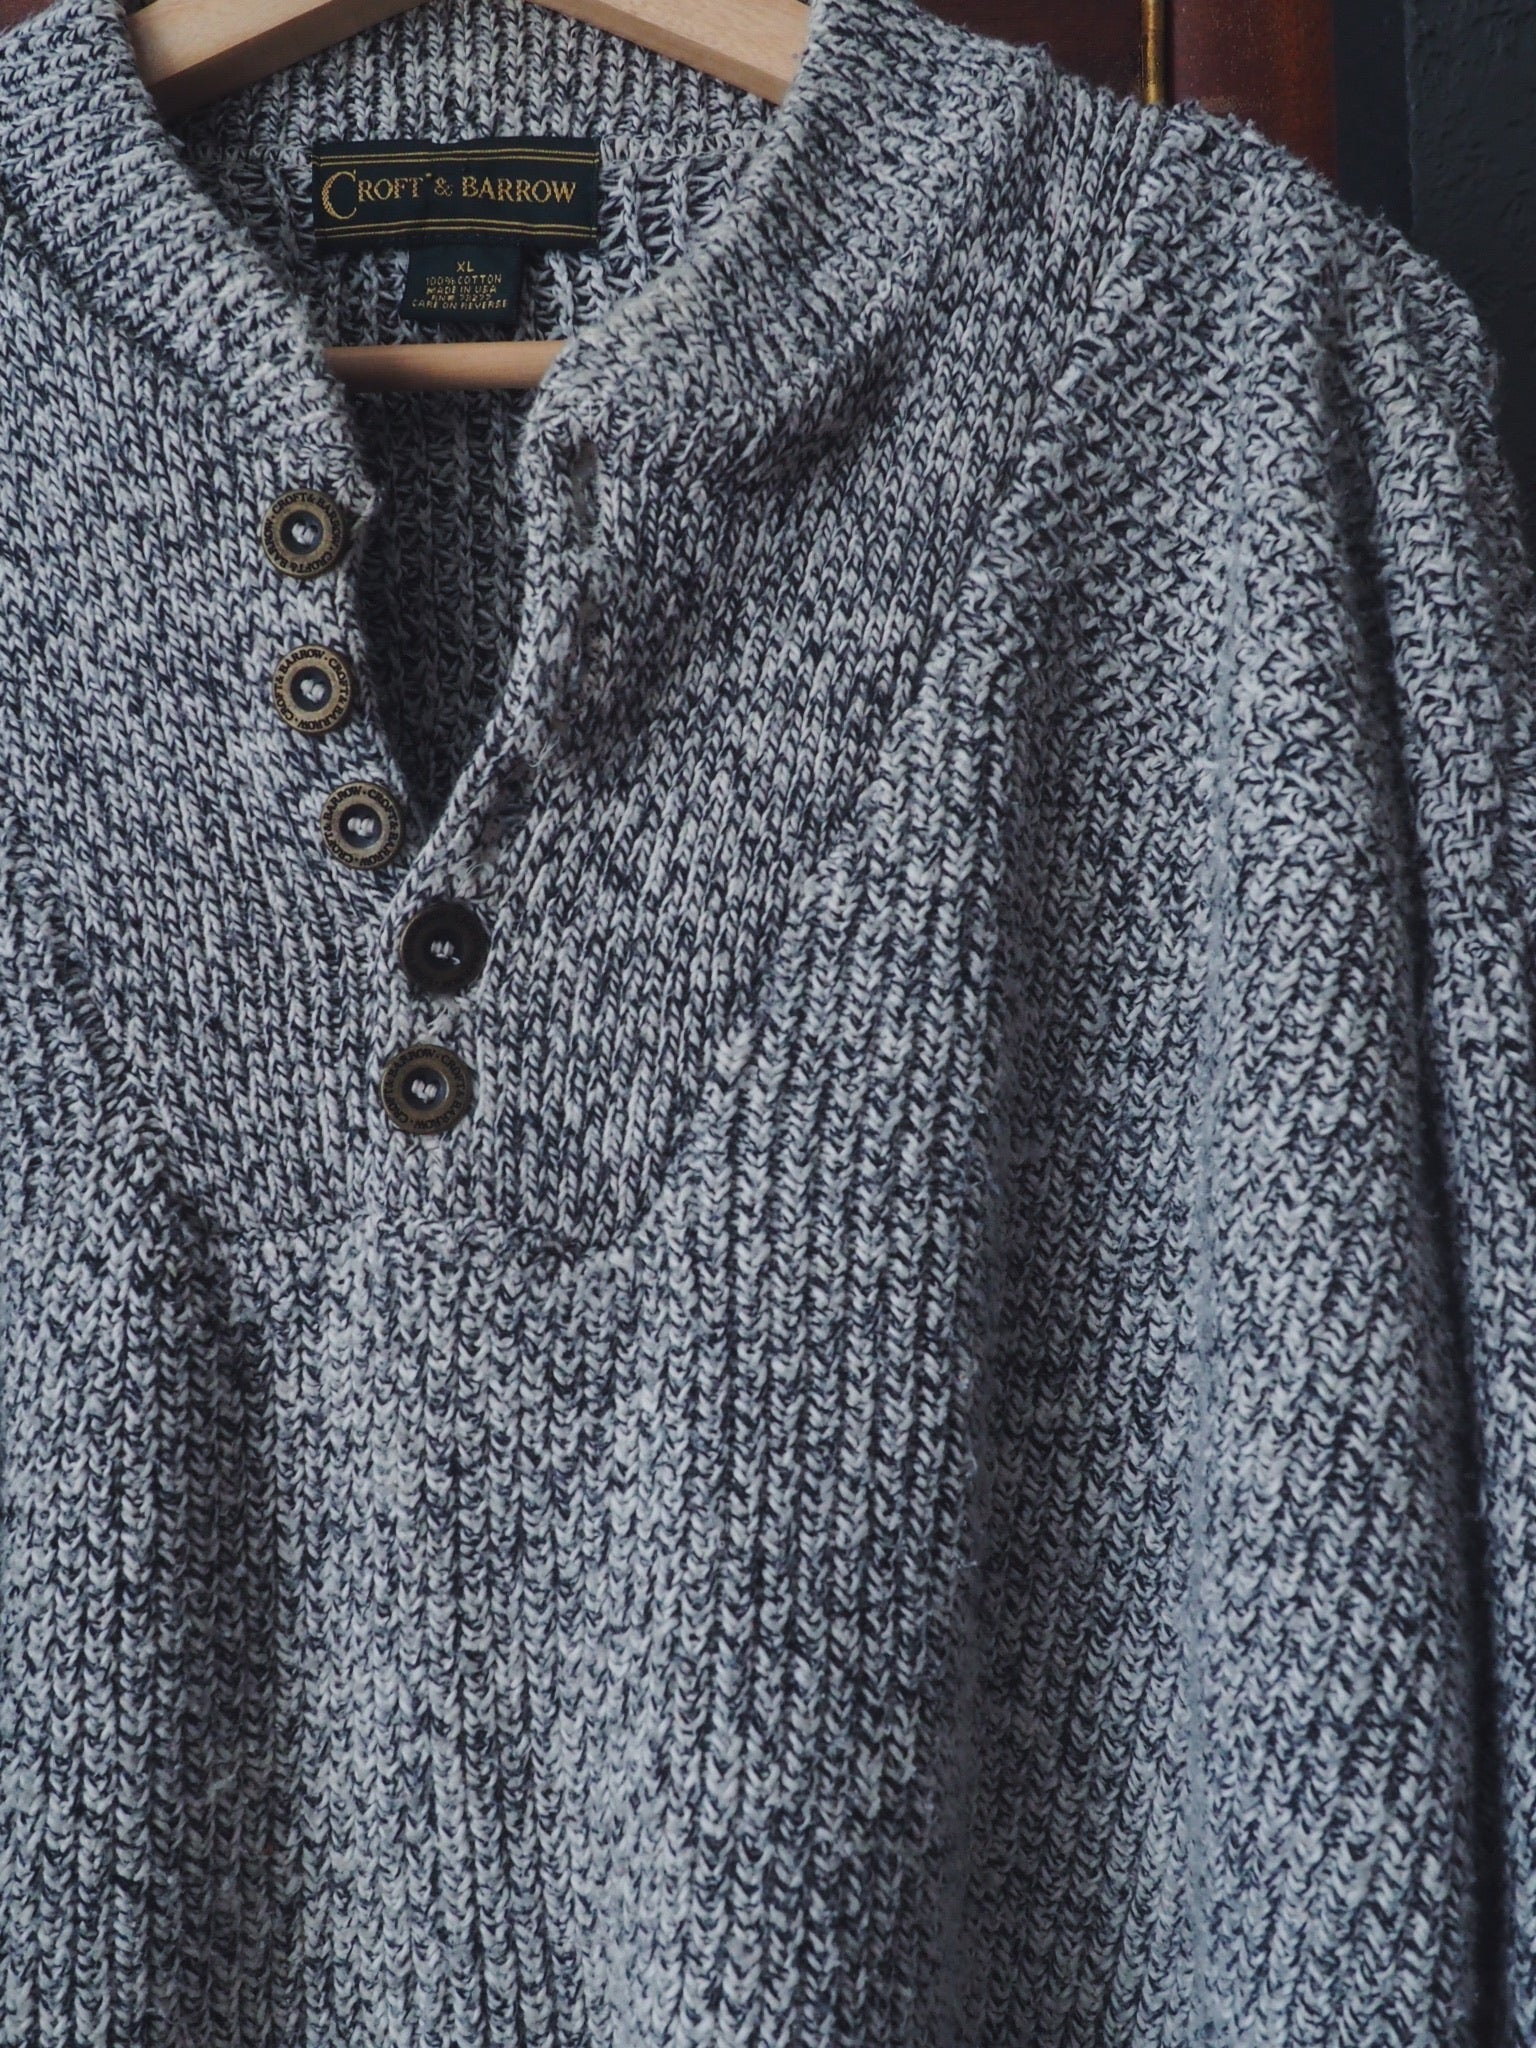 90s Cotton Heather Gray Sweater